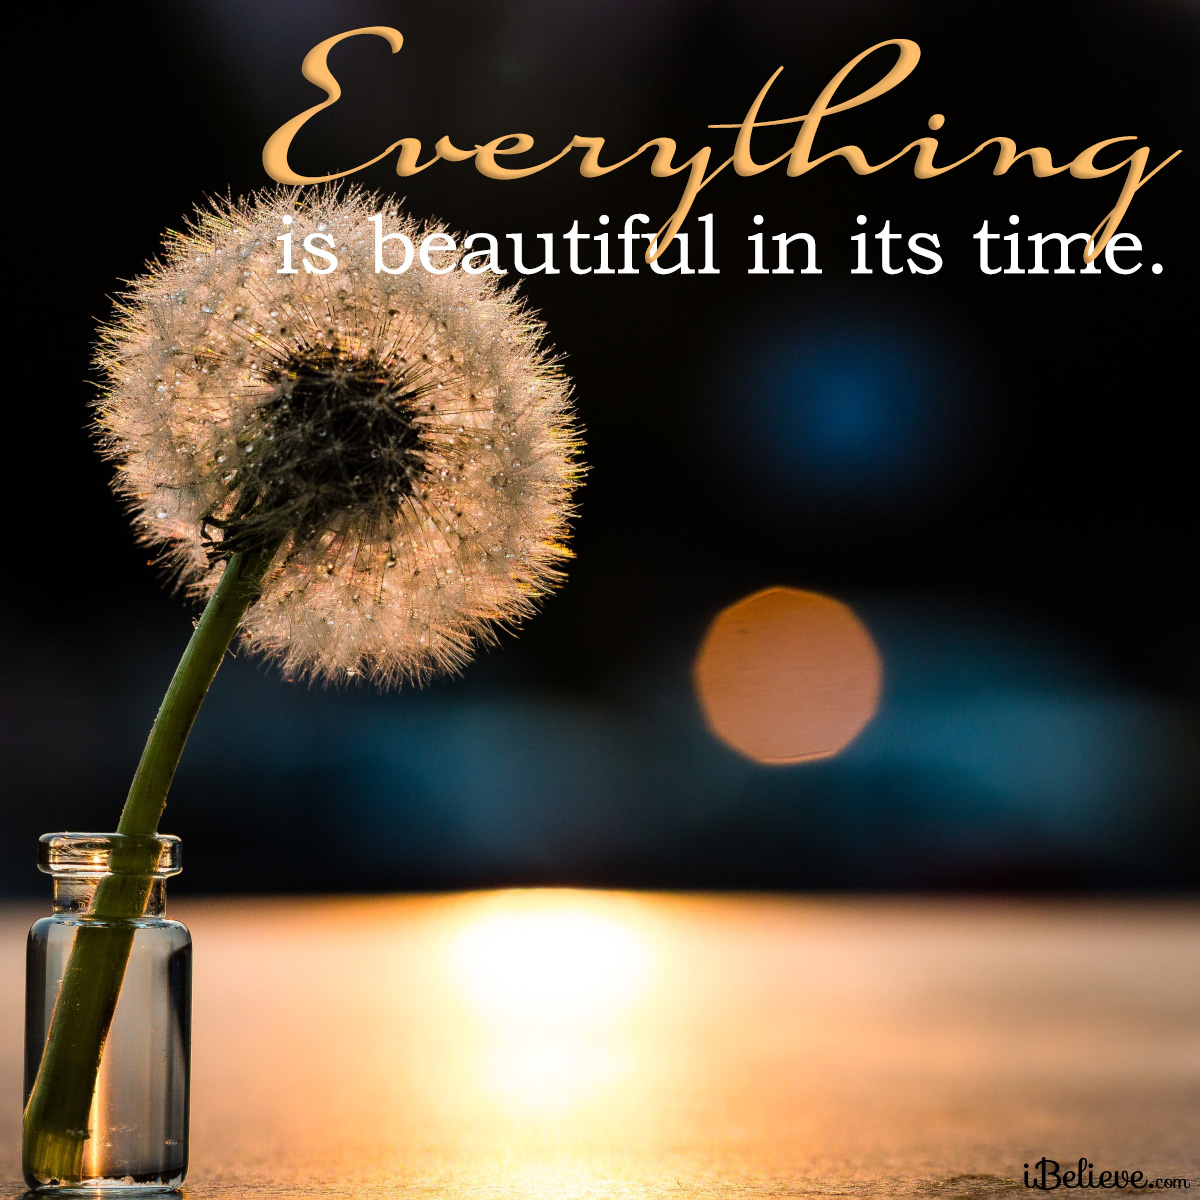 Everything beautiful in its time, inspirational image